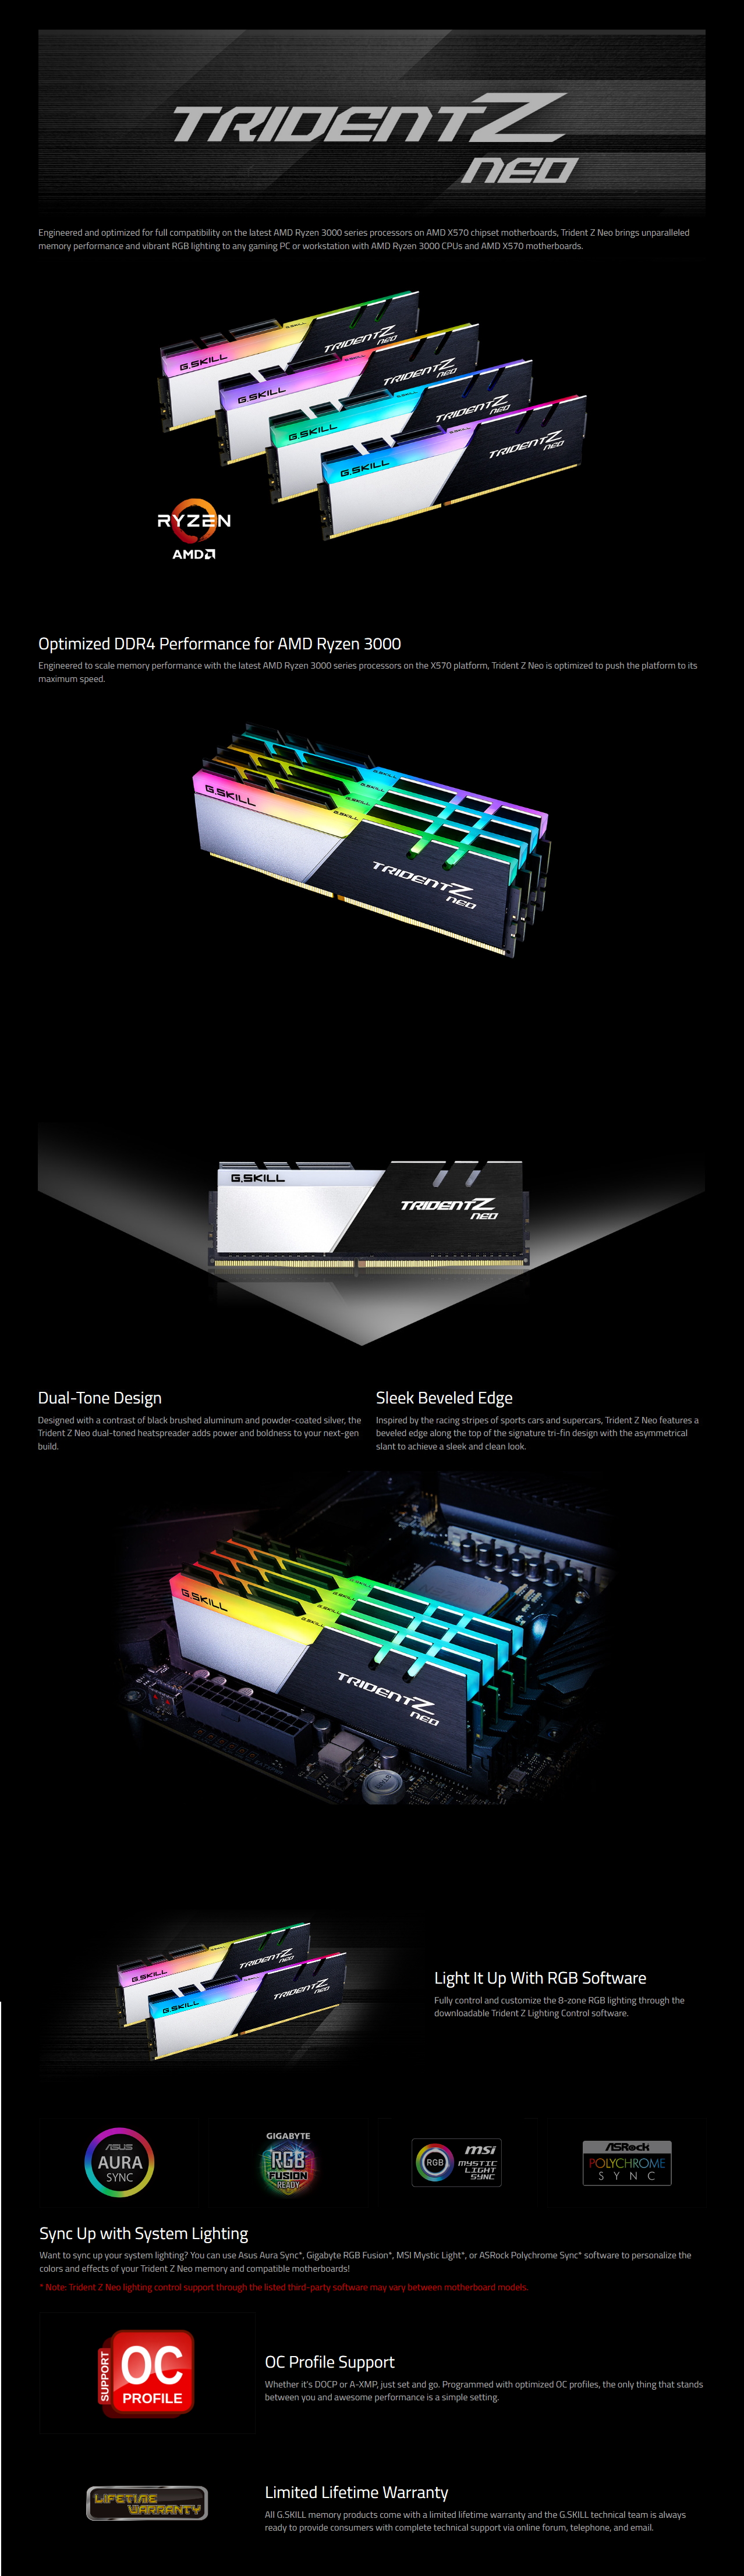 A large marketing image providing additional information about the product G.Skill 64GB Kit (2x32GB) DDR4 Trident Z RGB Neo C18 3600Mhz  - Additional alt info not provided